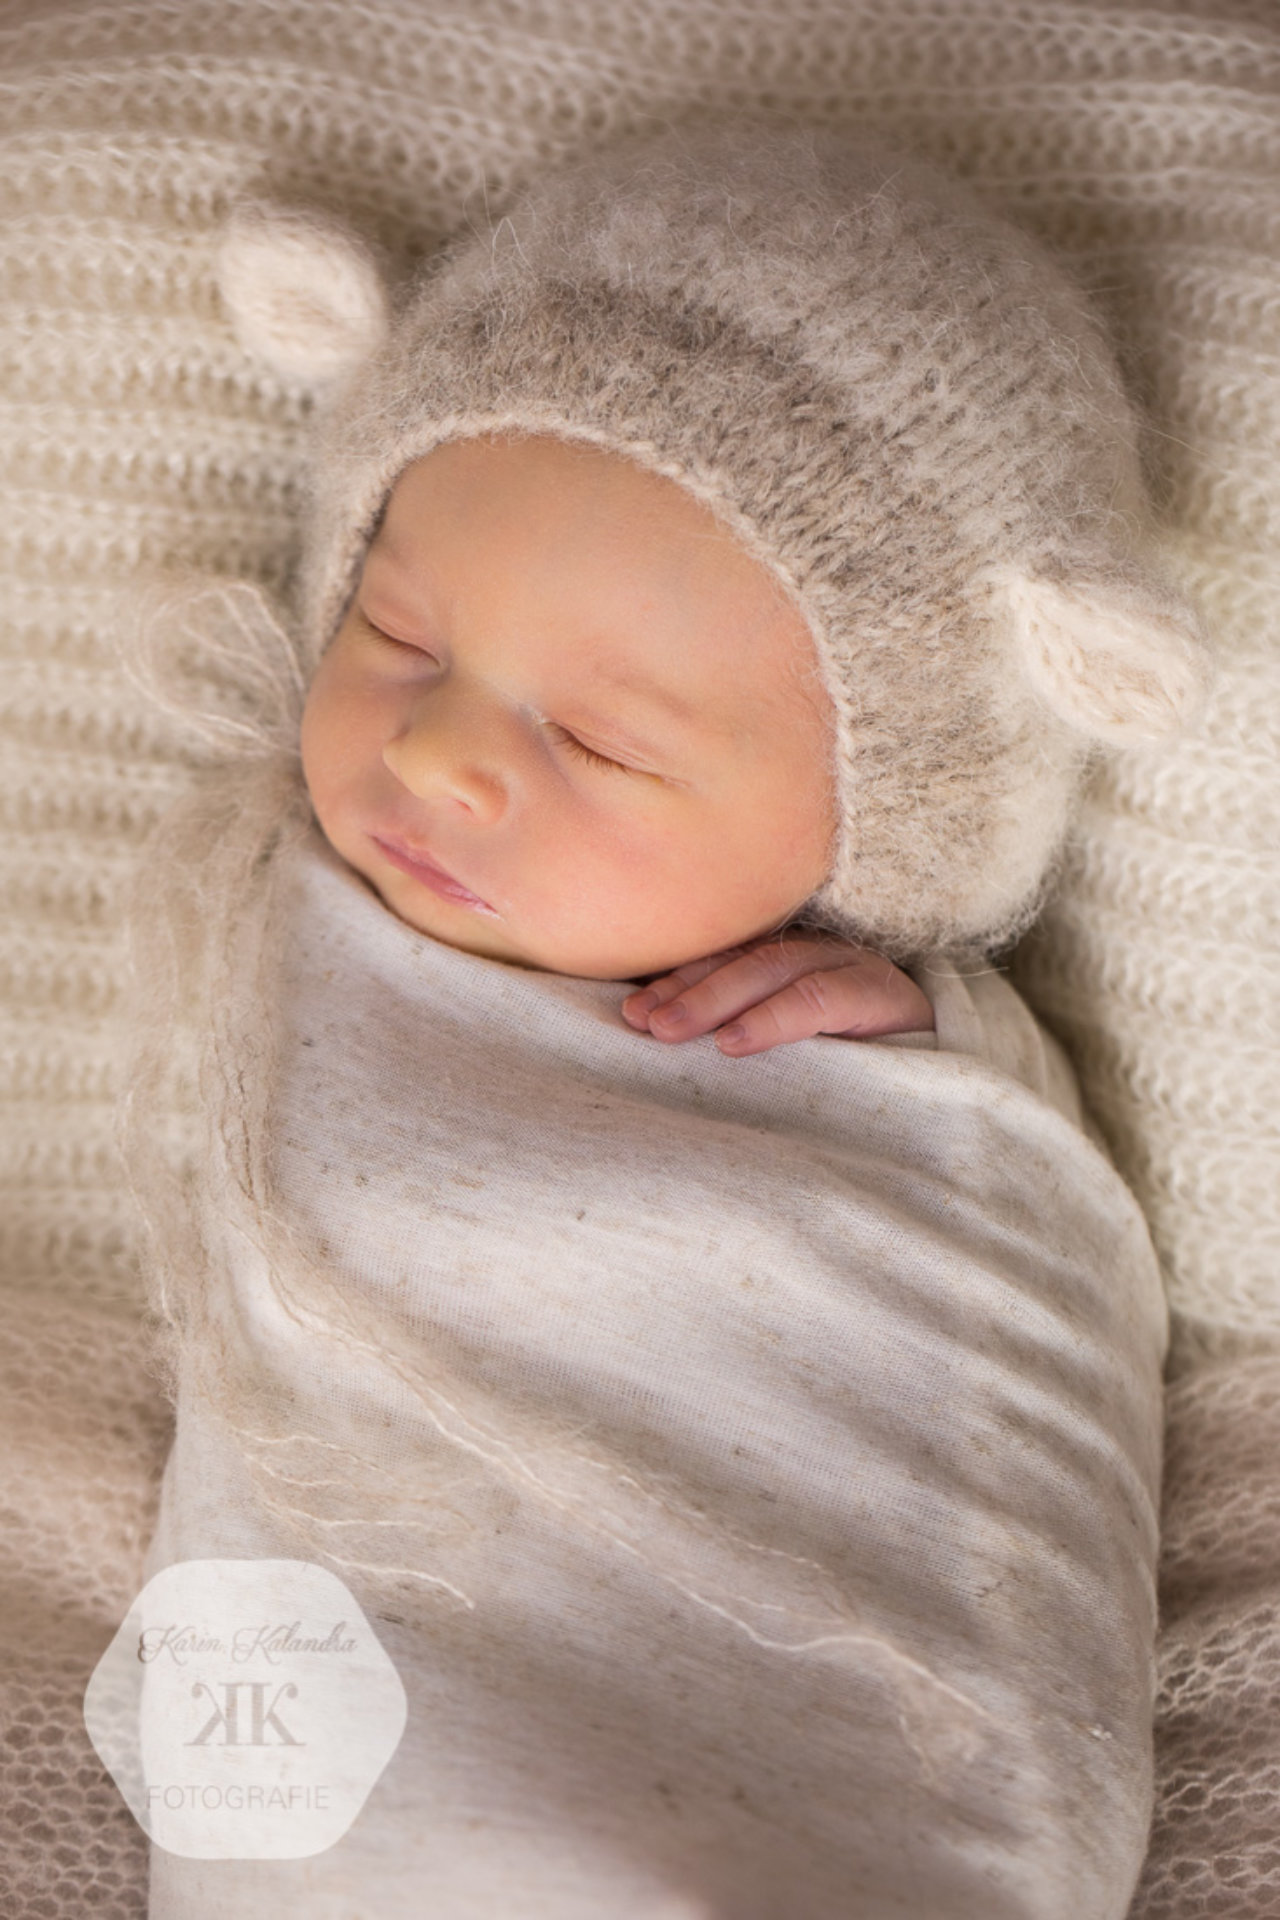 Newborn-Fotos #4